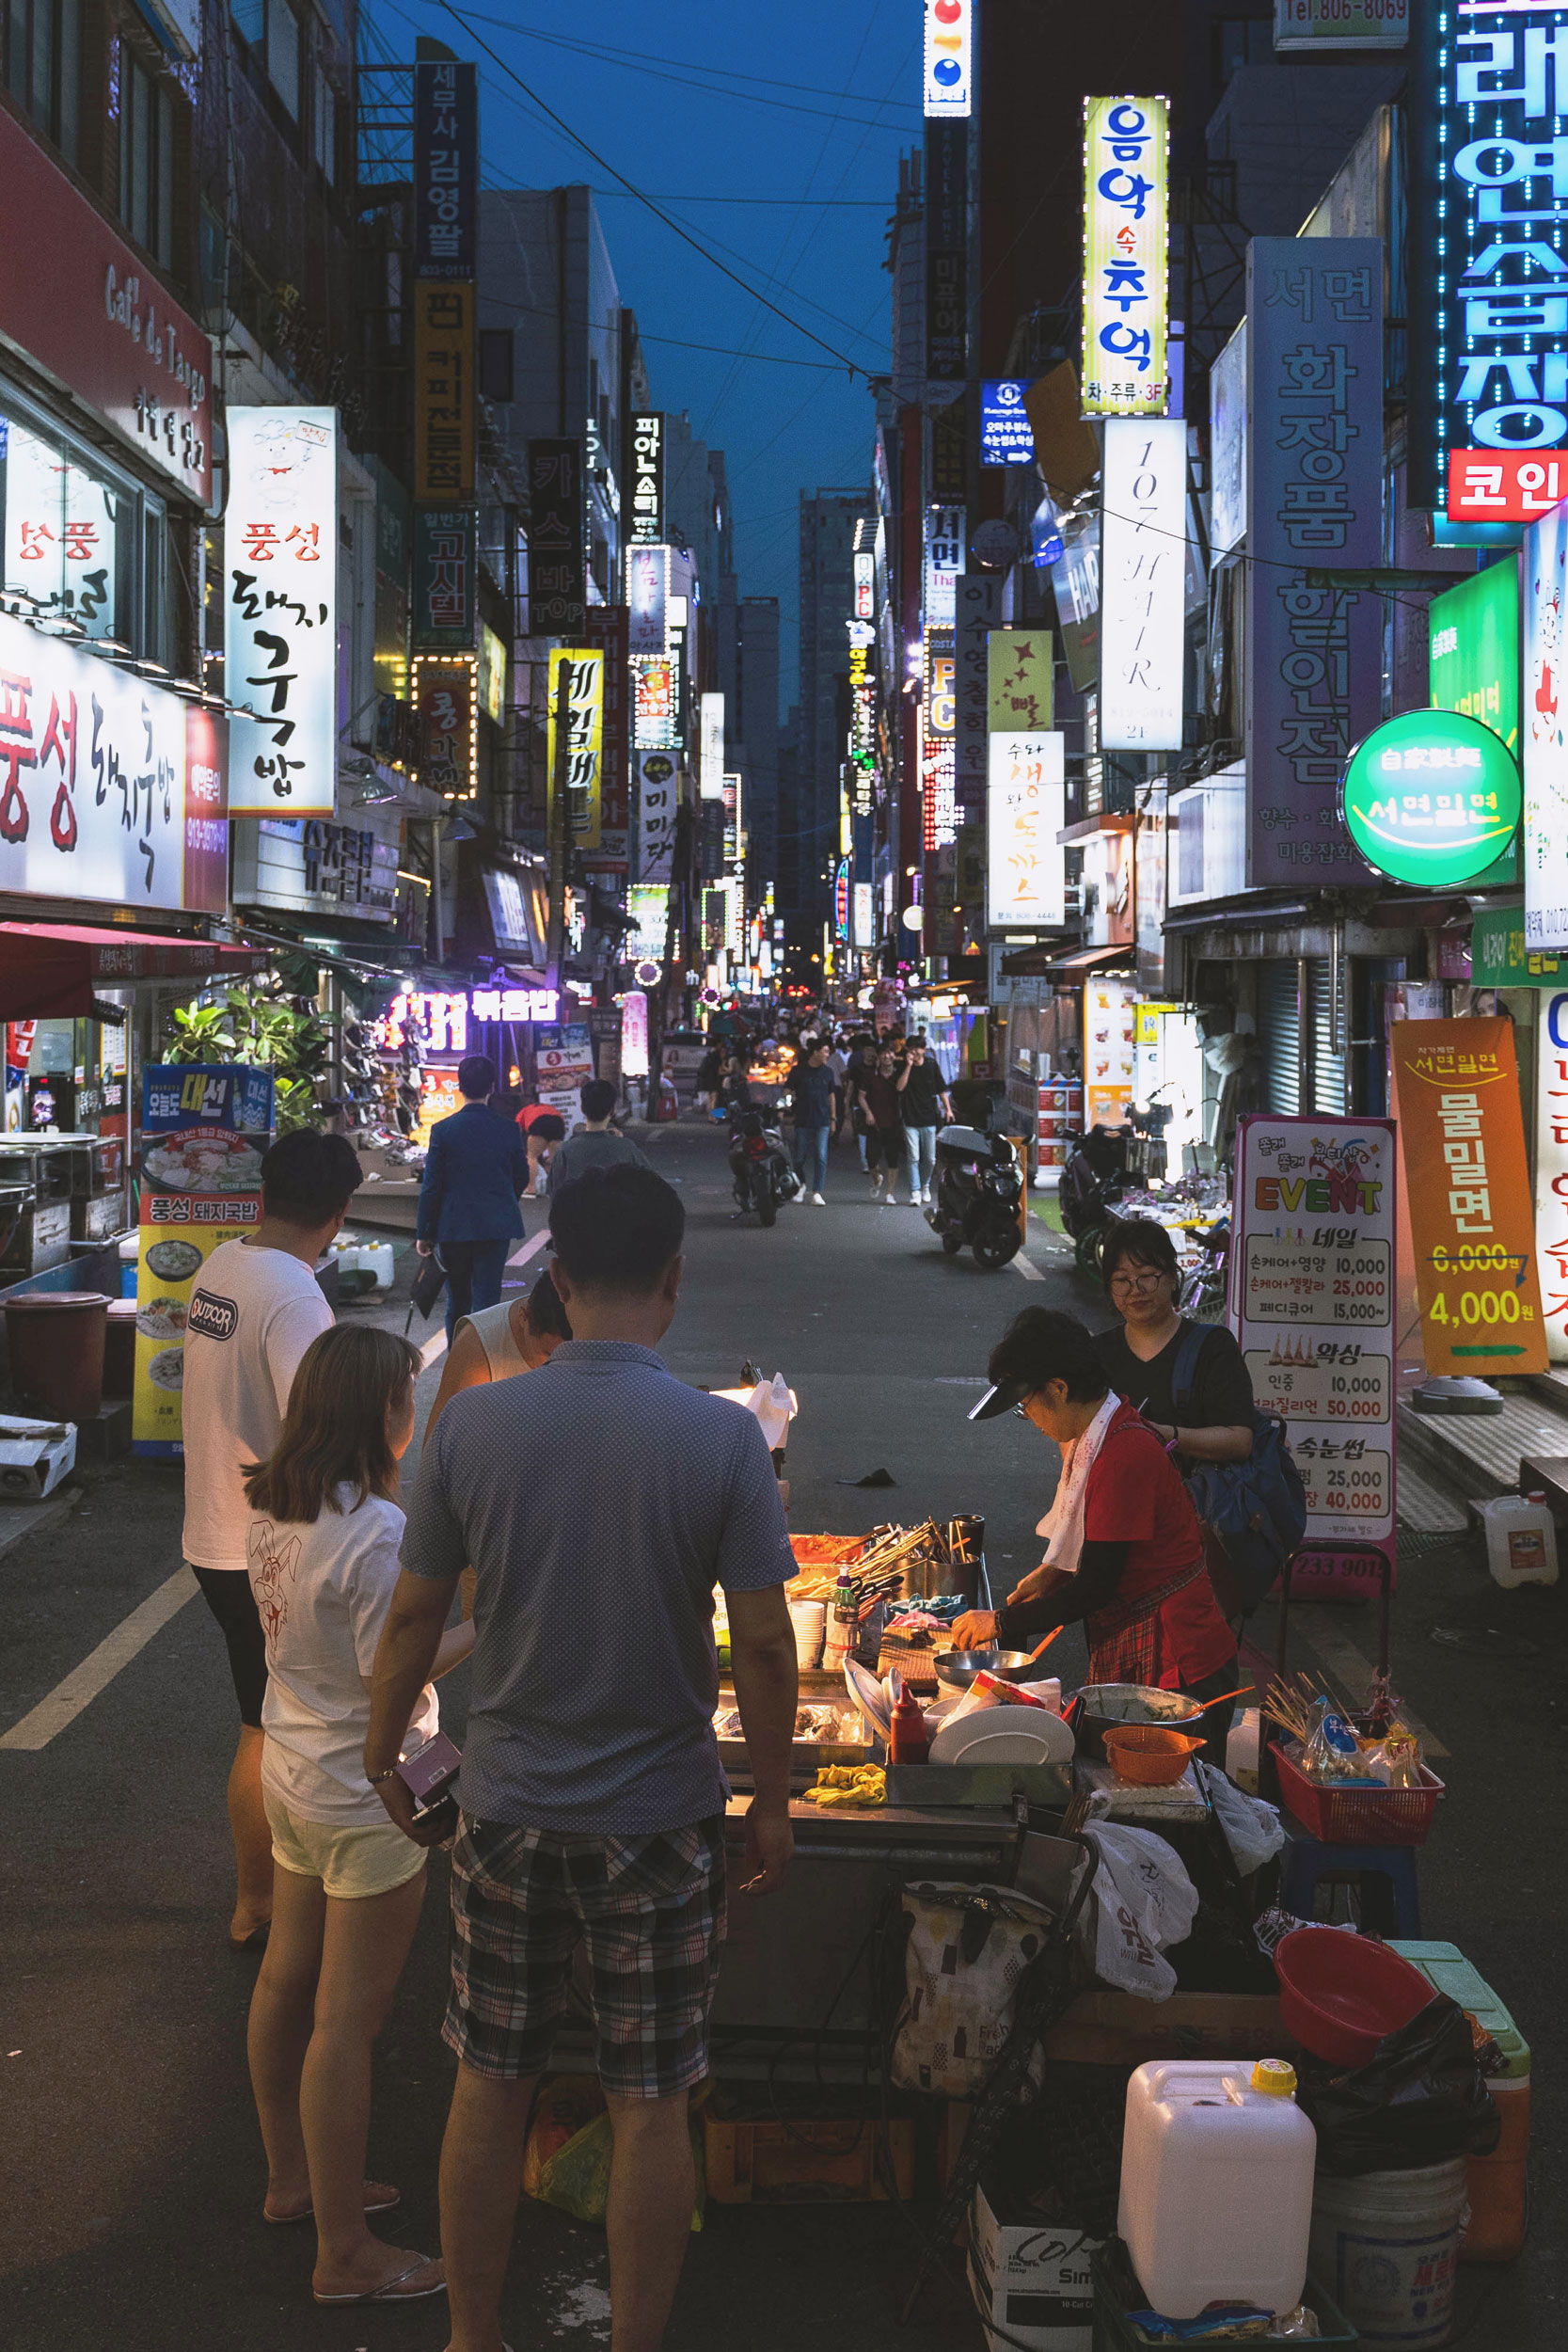 A street food cart in Seomyeong, Busan in the evening